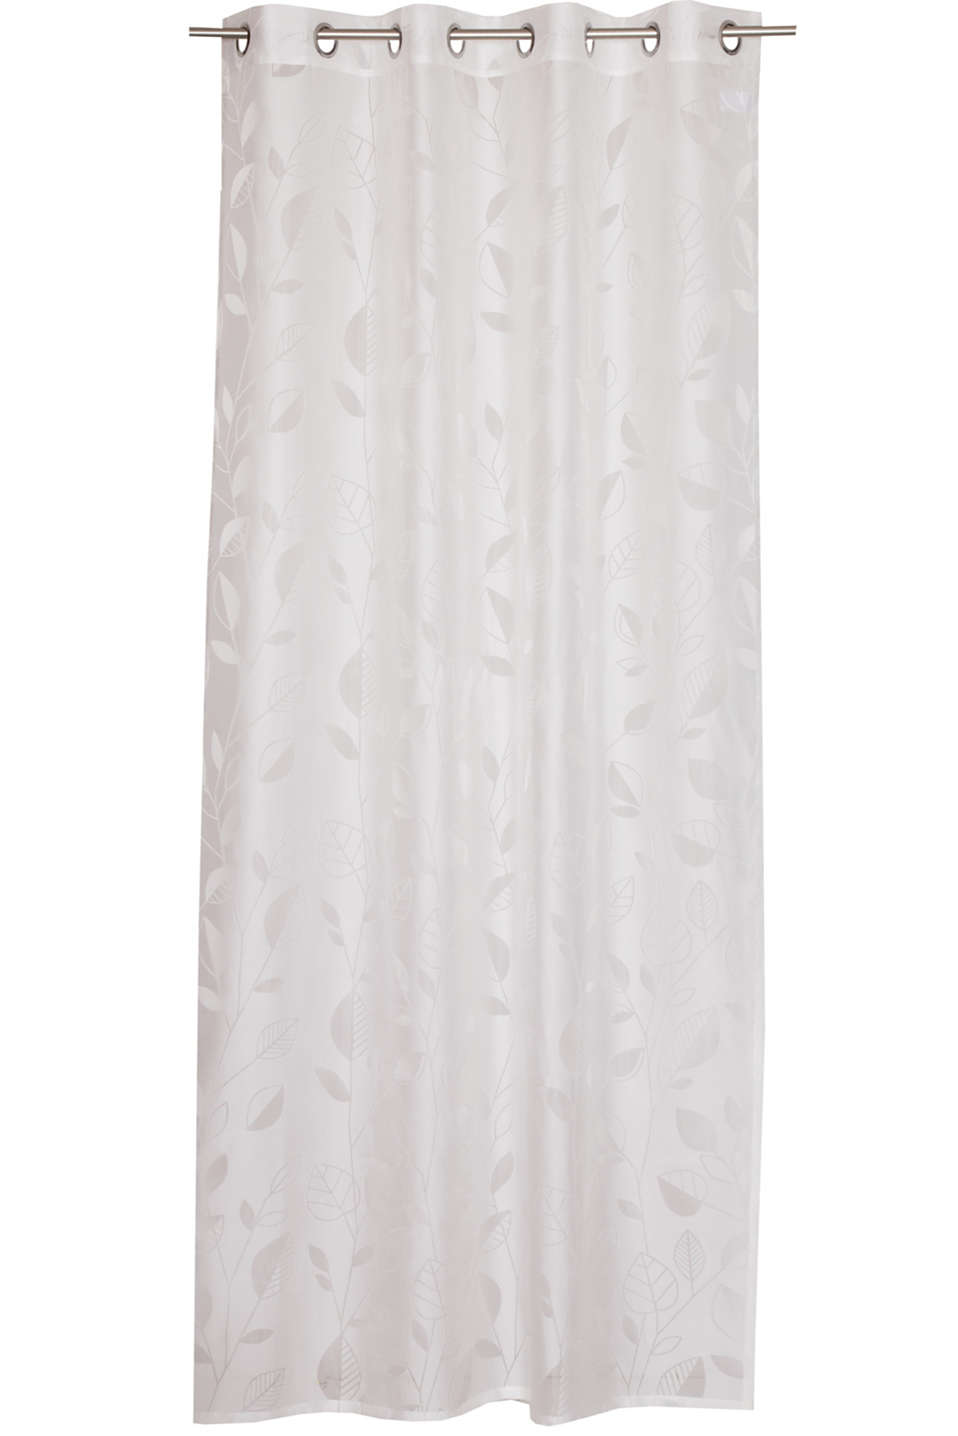 Esprit - Eyelet curtain with an burnt-out pattern